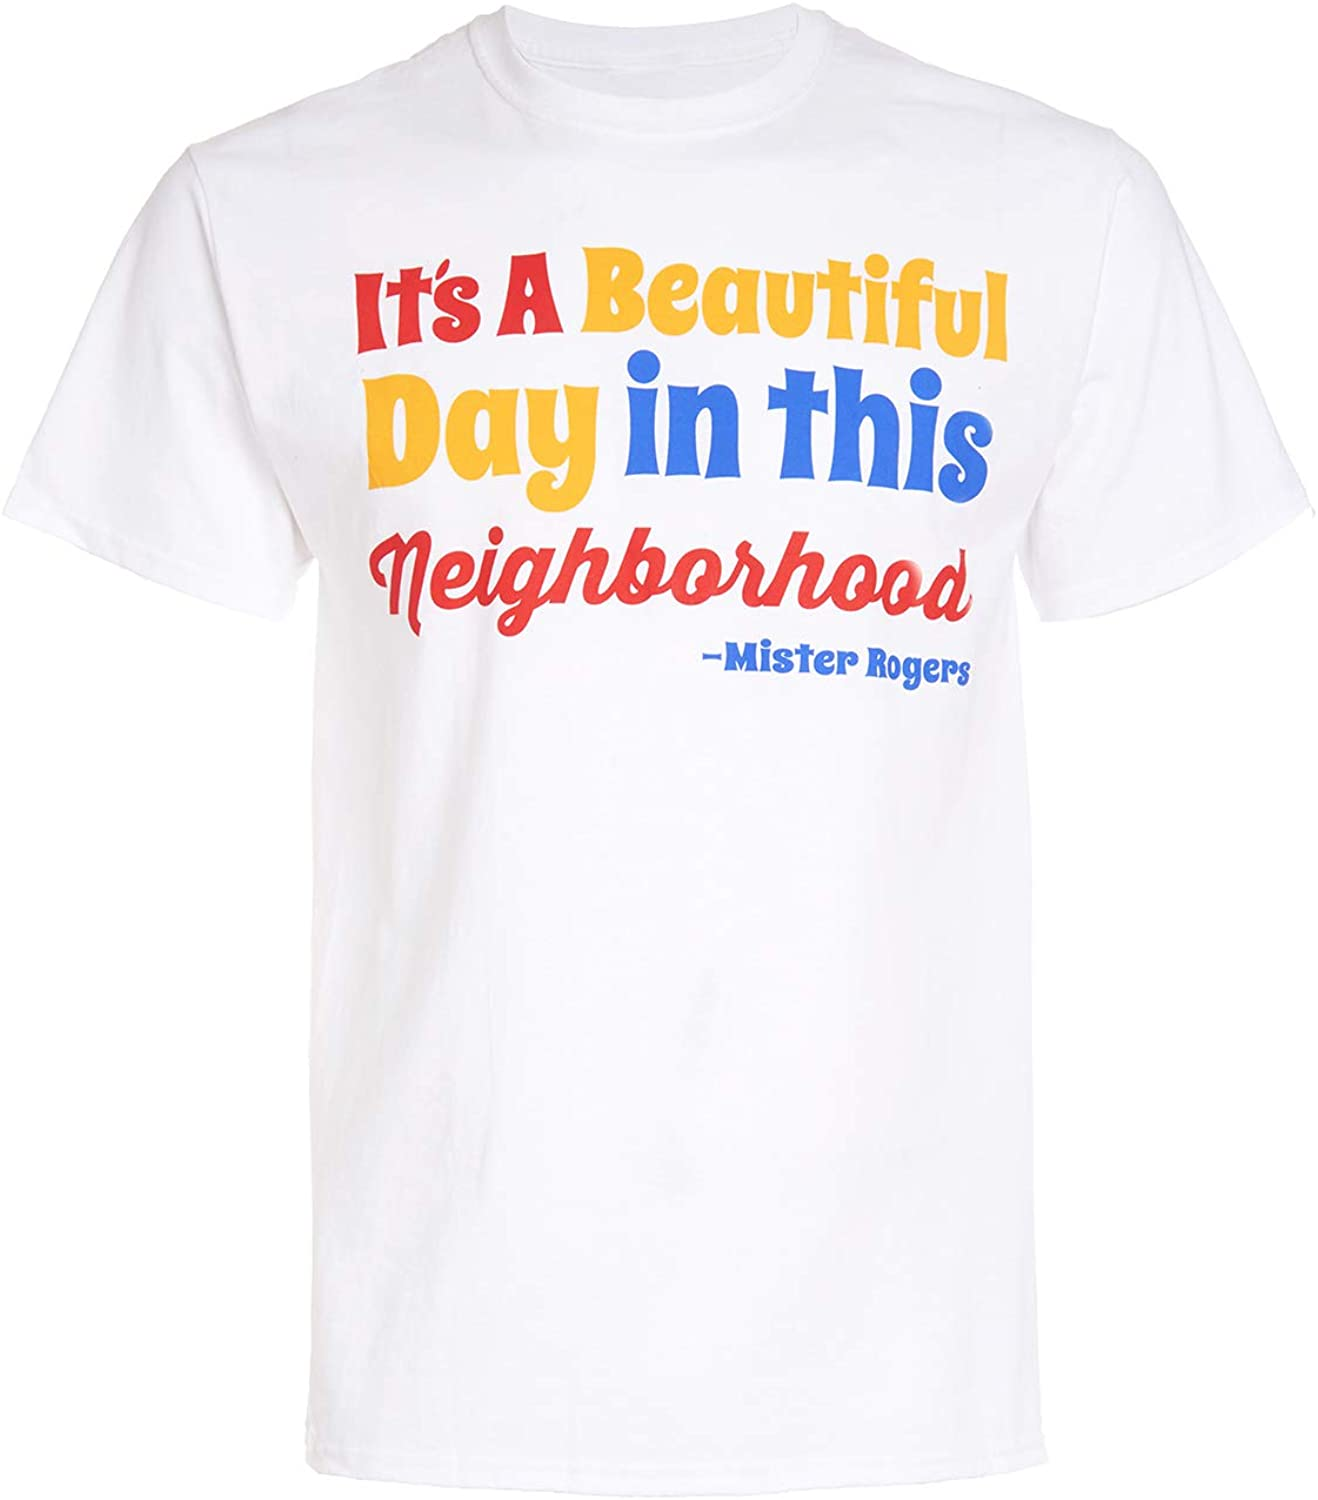 Amazon Com Mr Rogers Men S Short Sleeve T Shirt It S A Beautiful Day In This Neighborhood Shirt Clothing